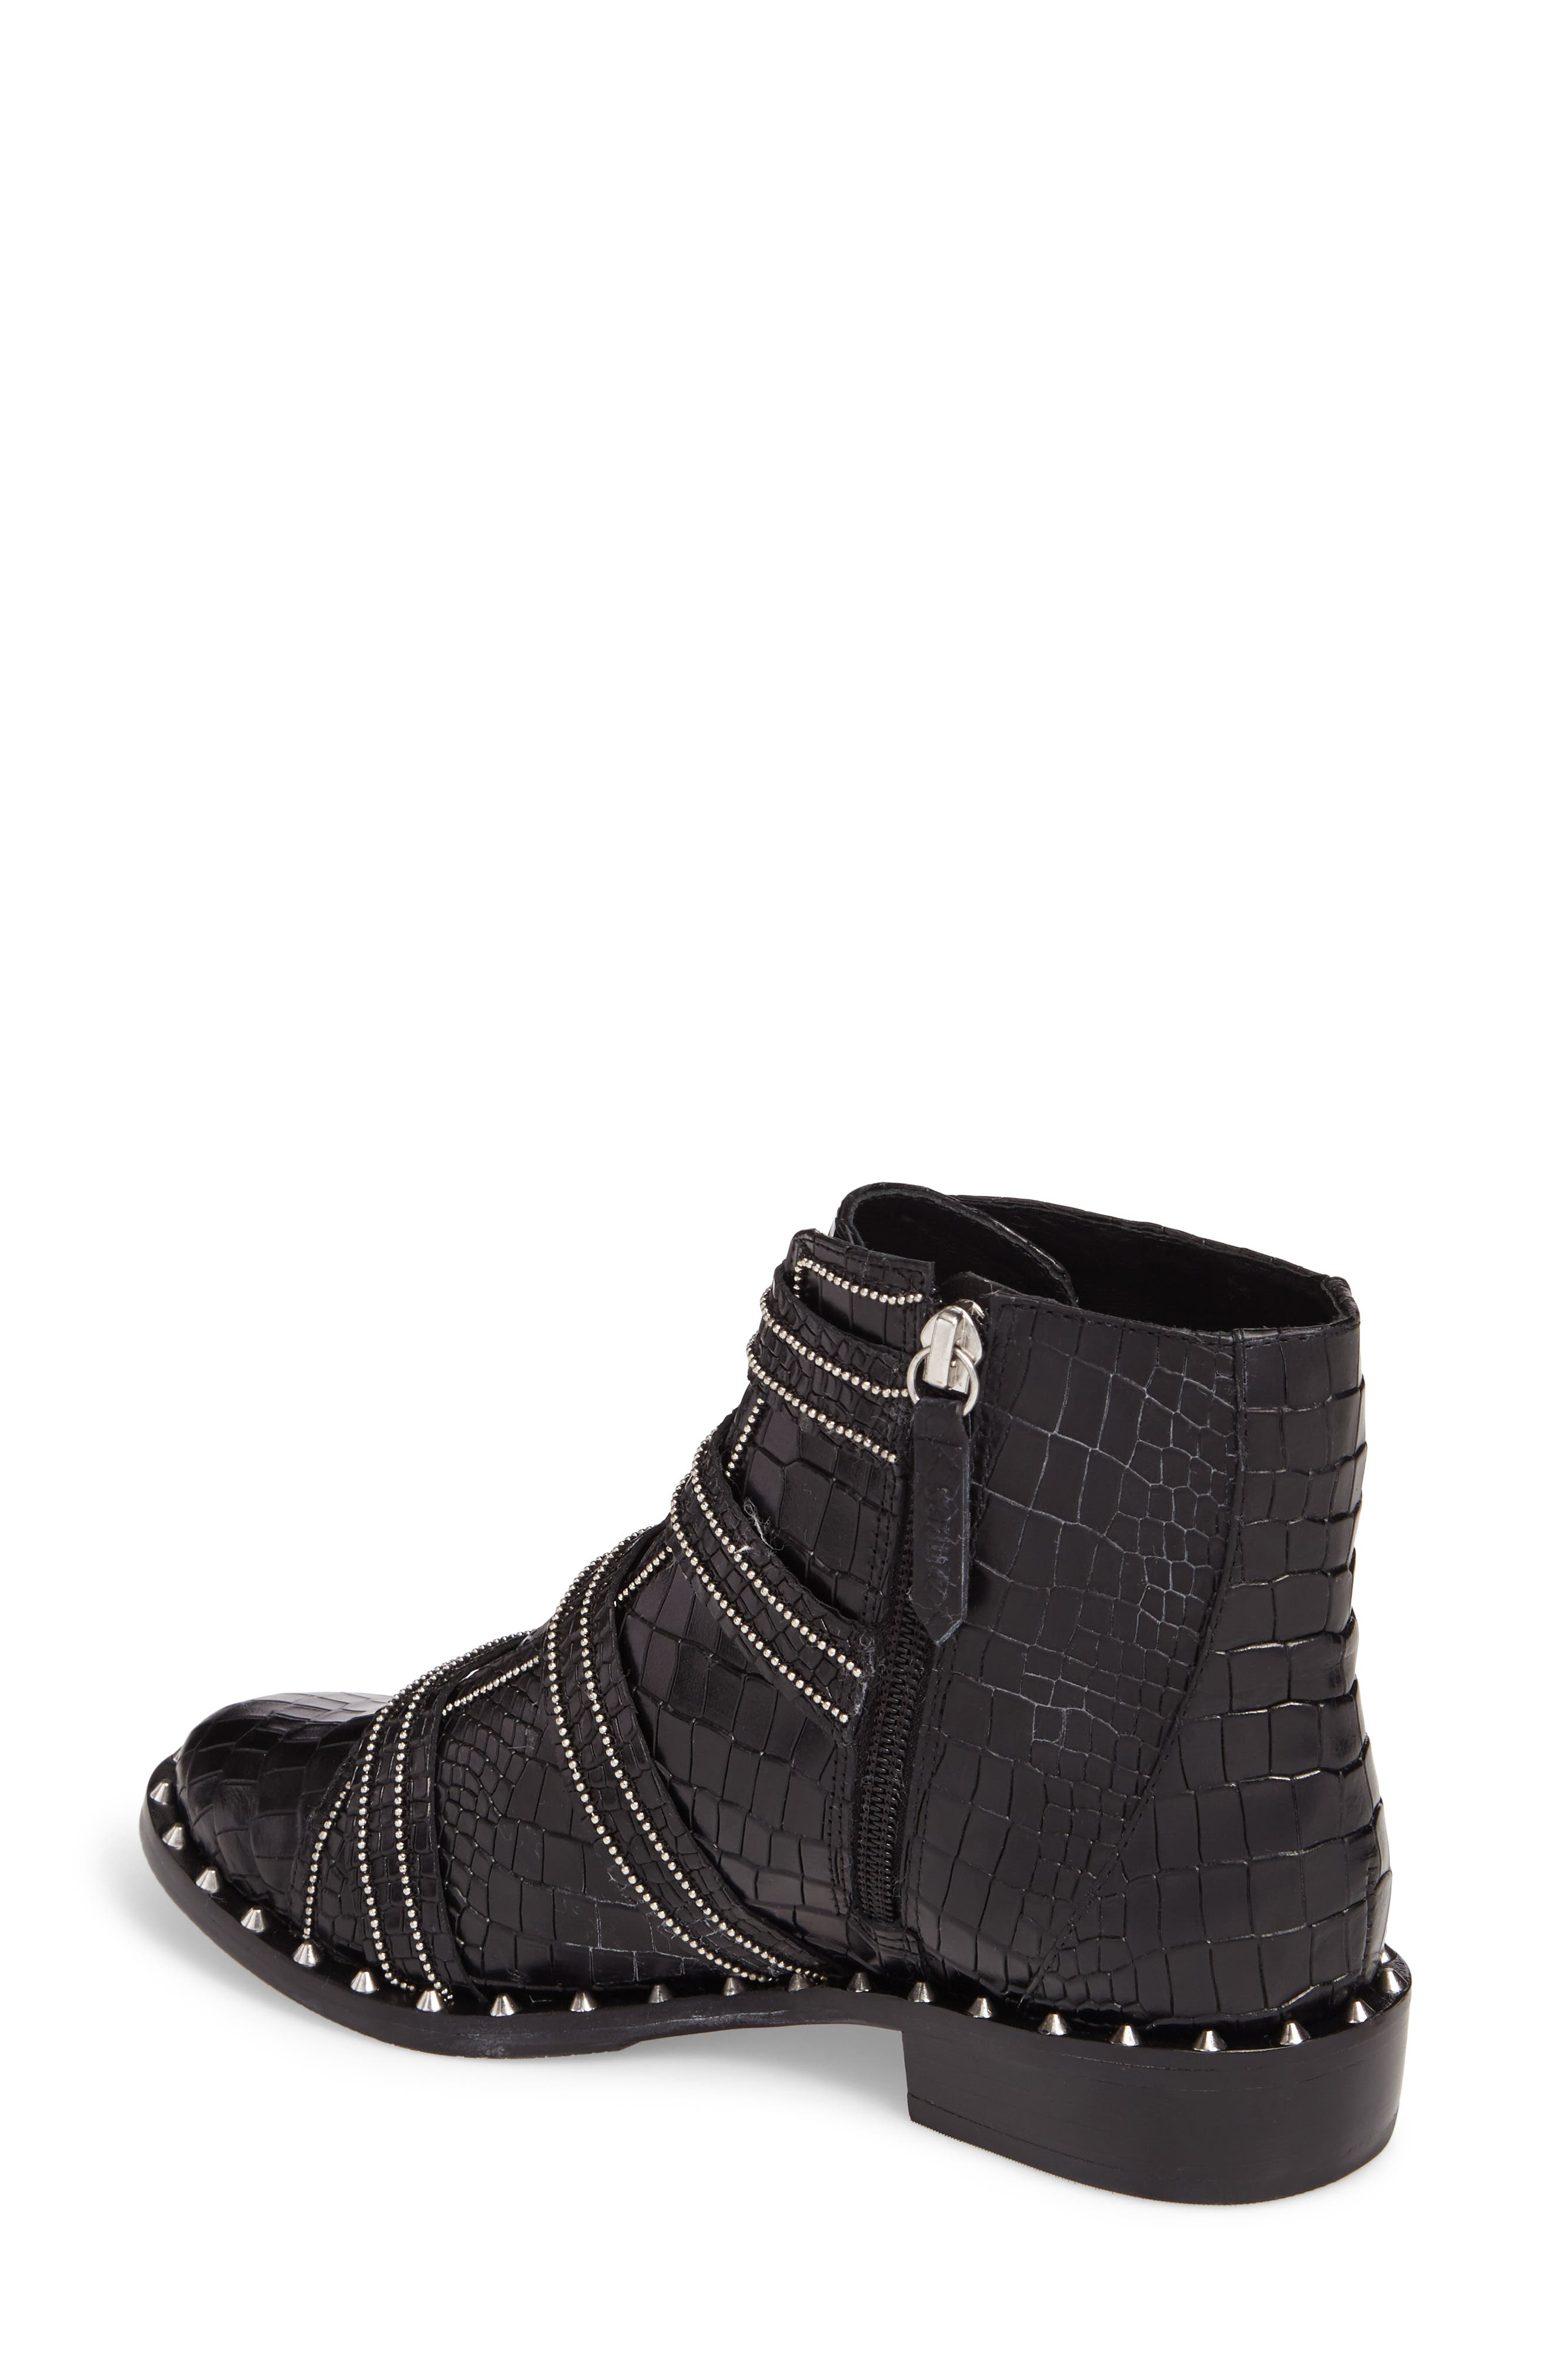 Alternate Image 2  - Schutz Darcey Studded Croc Embossed Bootie (Women)